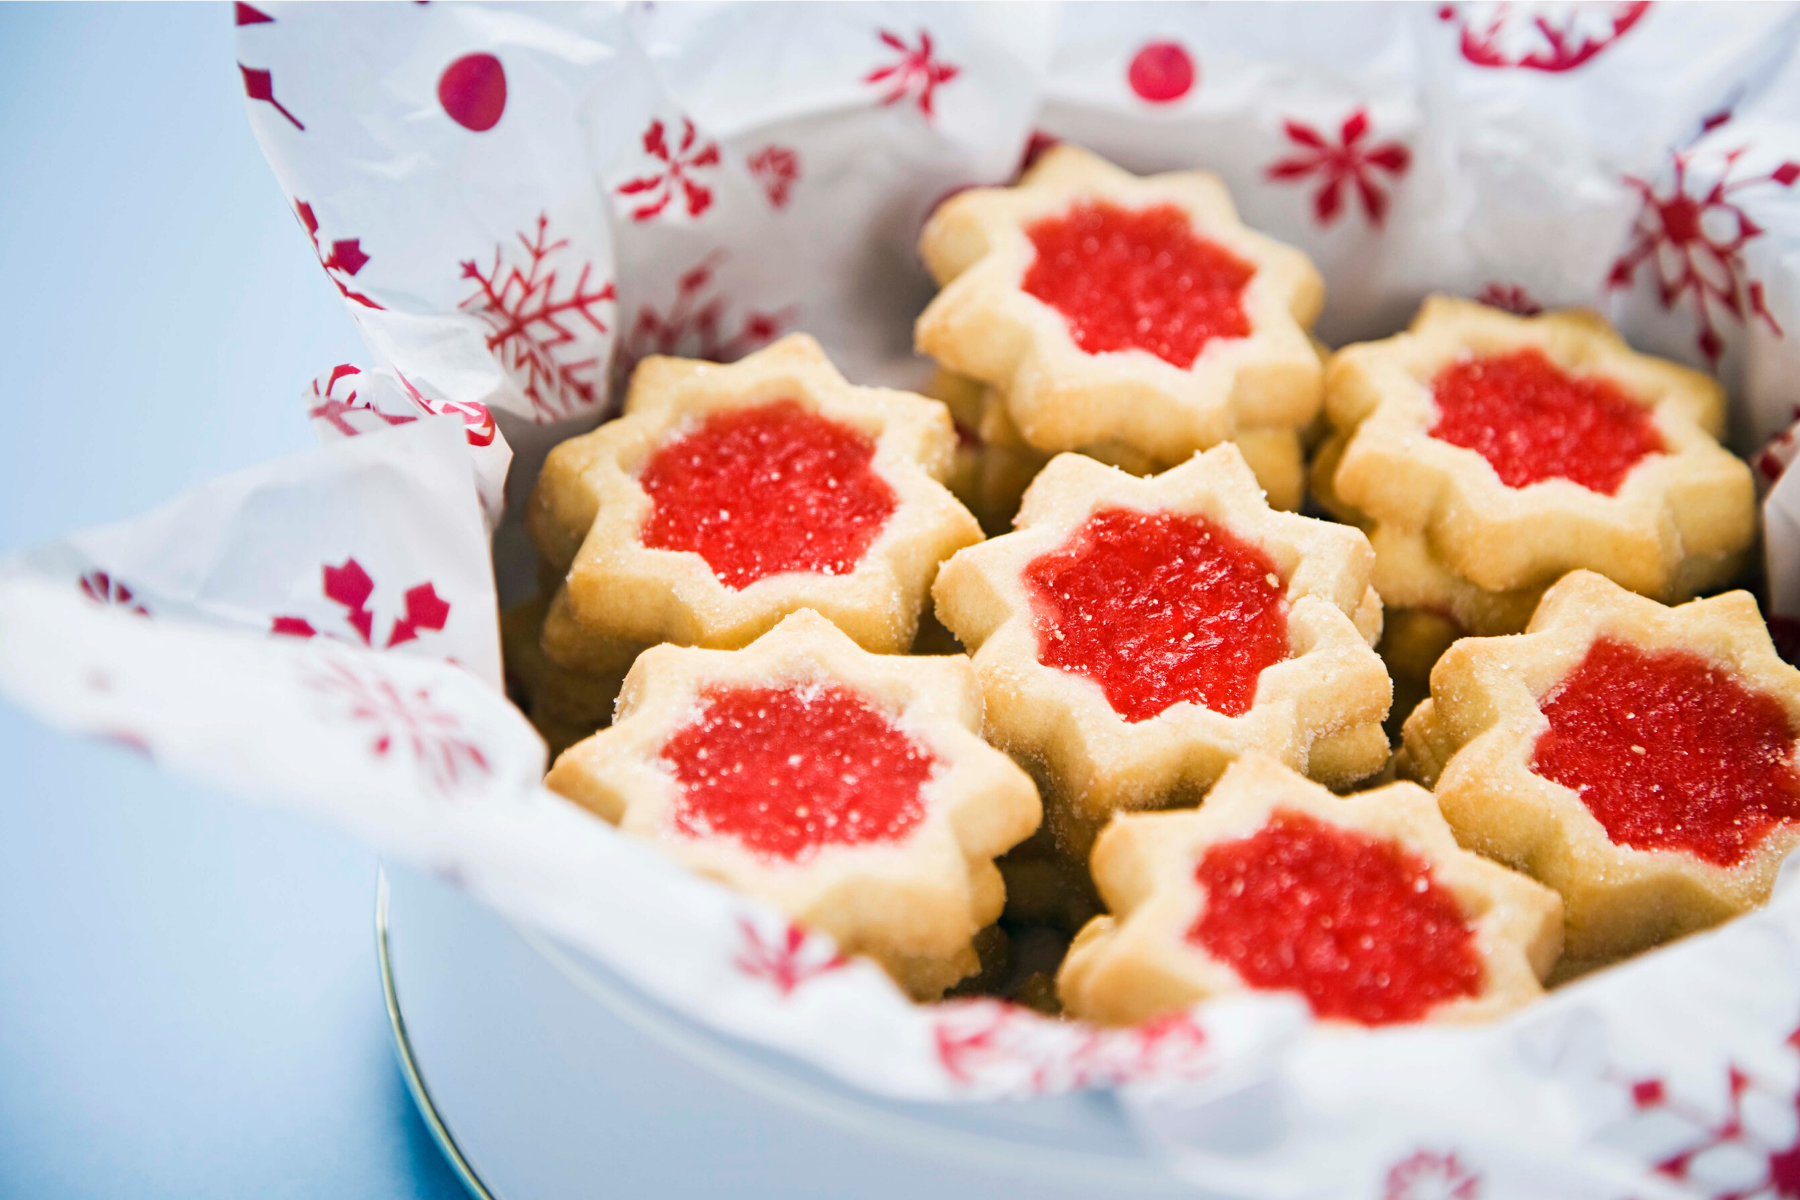 3 EASY TIPS To ENJOY HOLIDAY SWEETS WITHOUT GUILT Or GAIN!